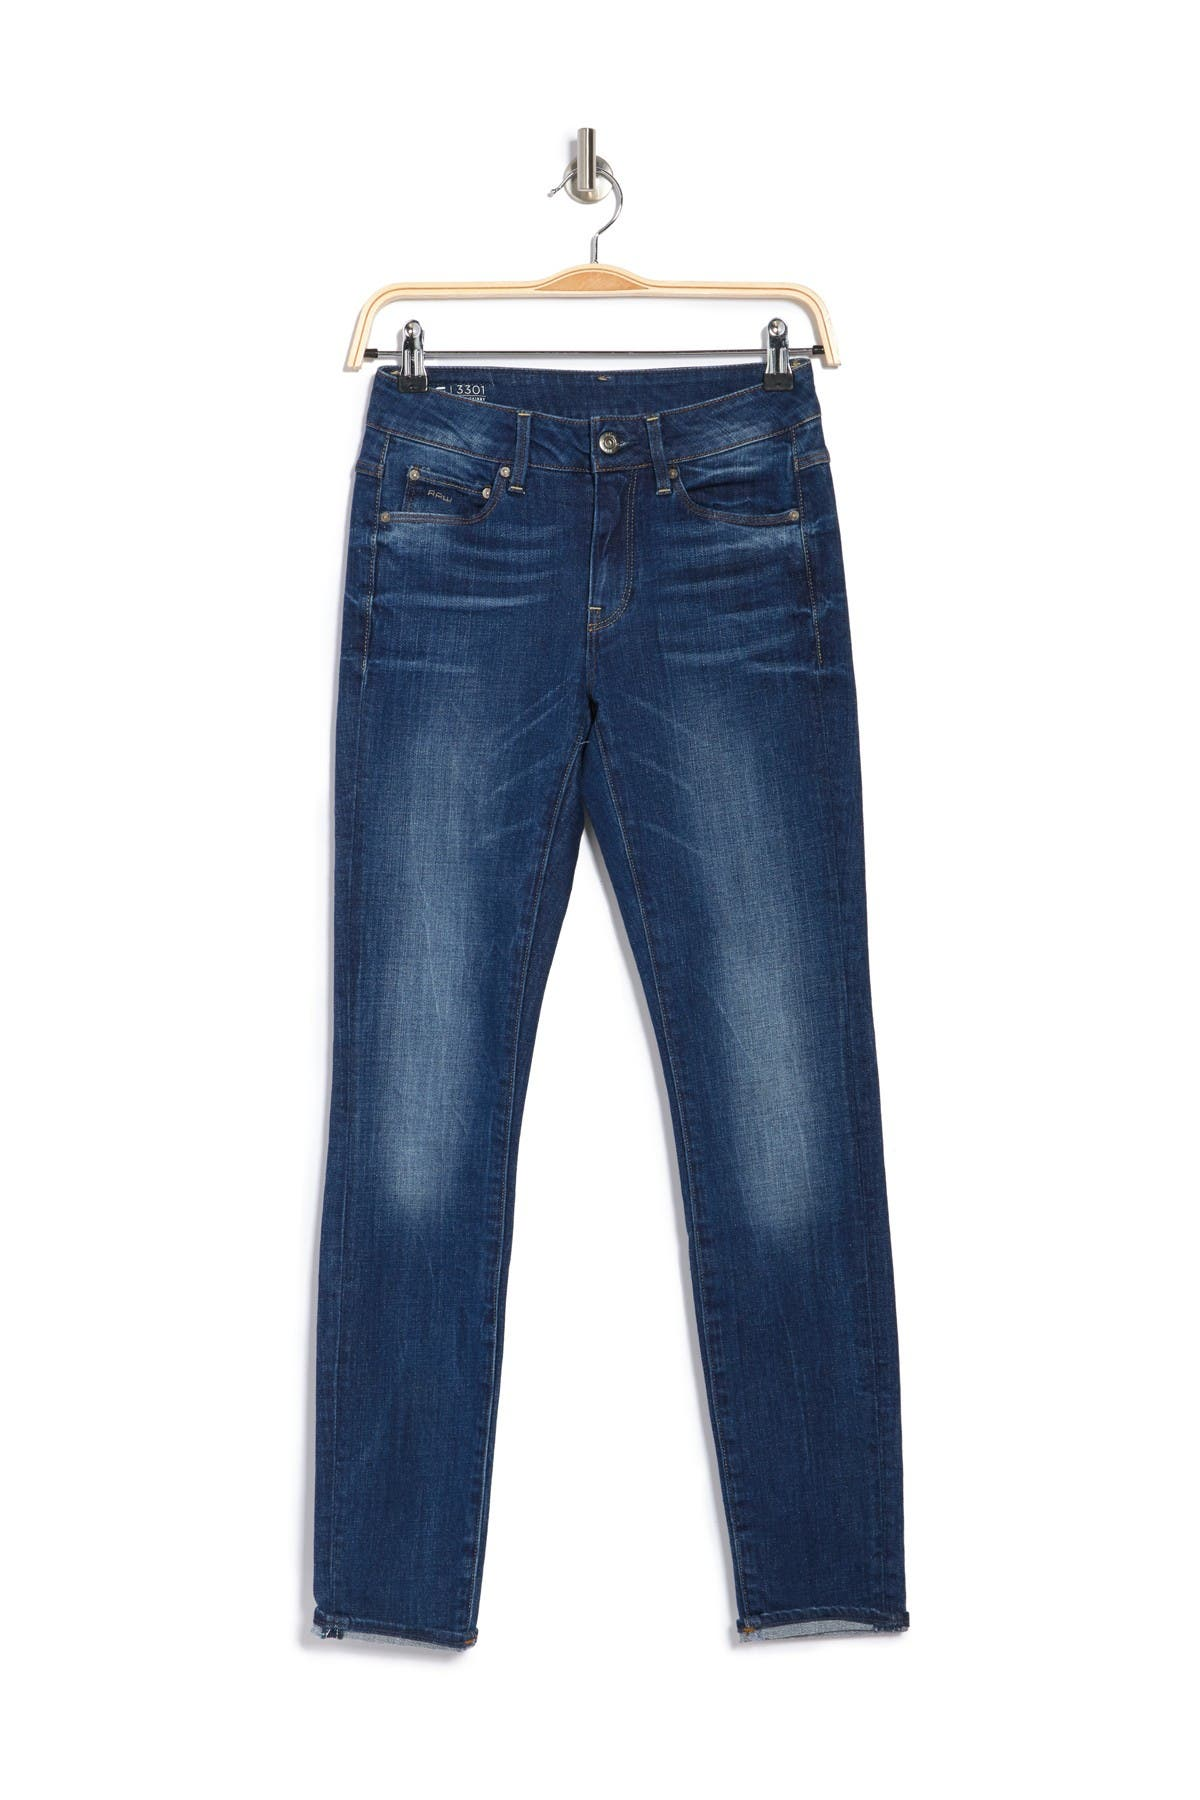 Image of G-STAR RAW 3301 High Skinny Jeans